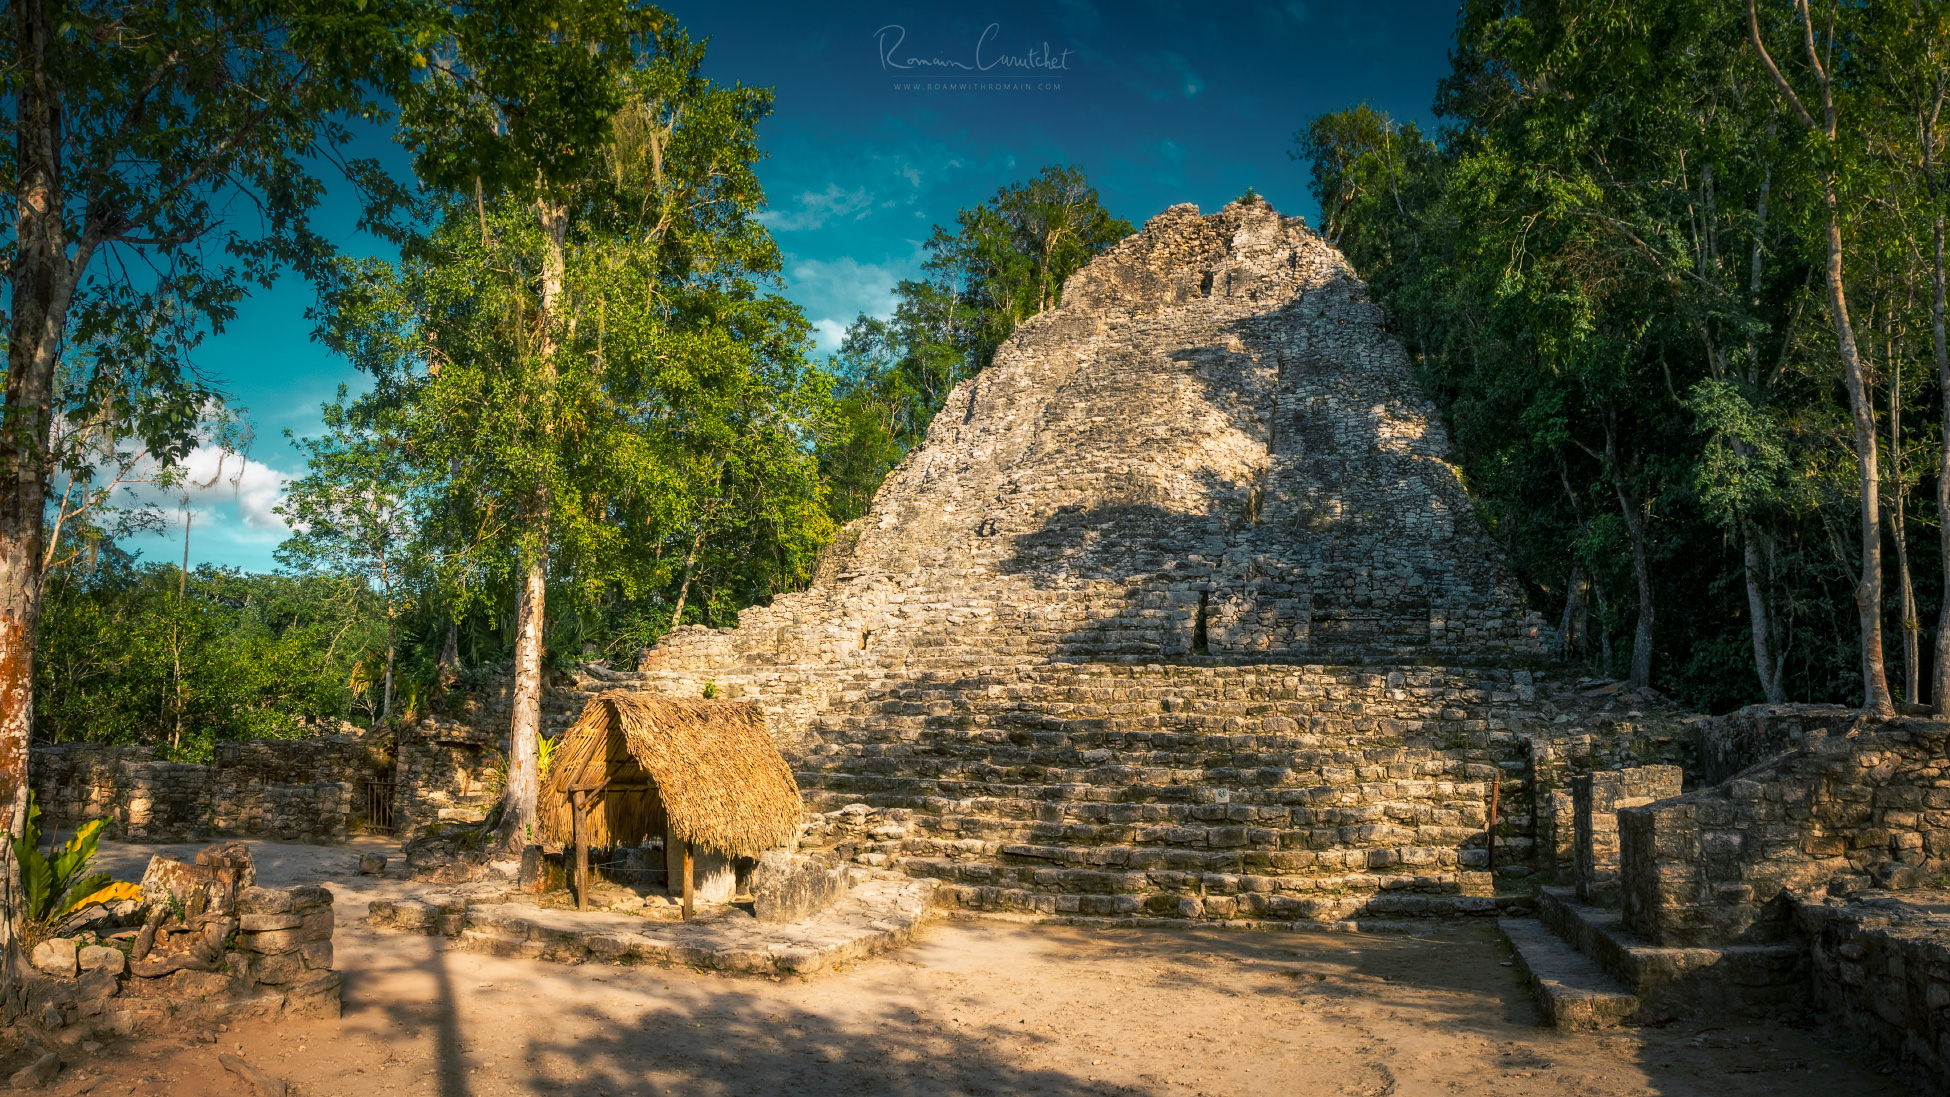 A pyramid in Coba archaeological site, Yucatán